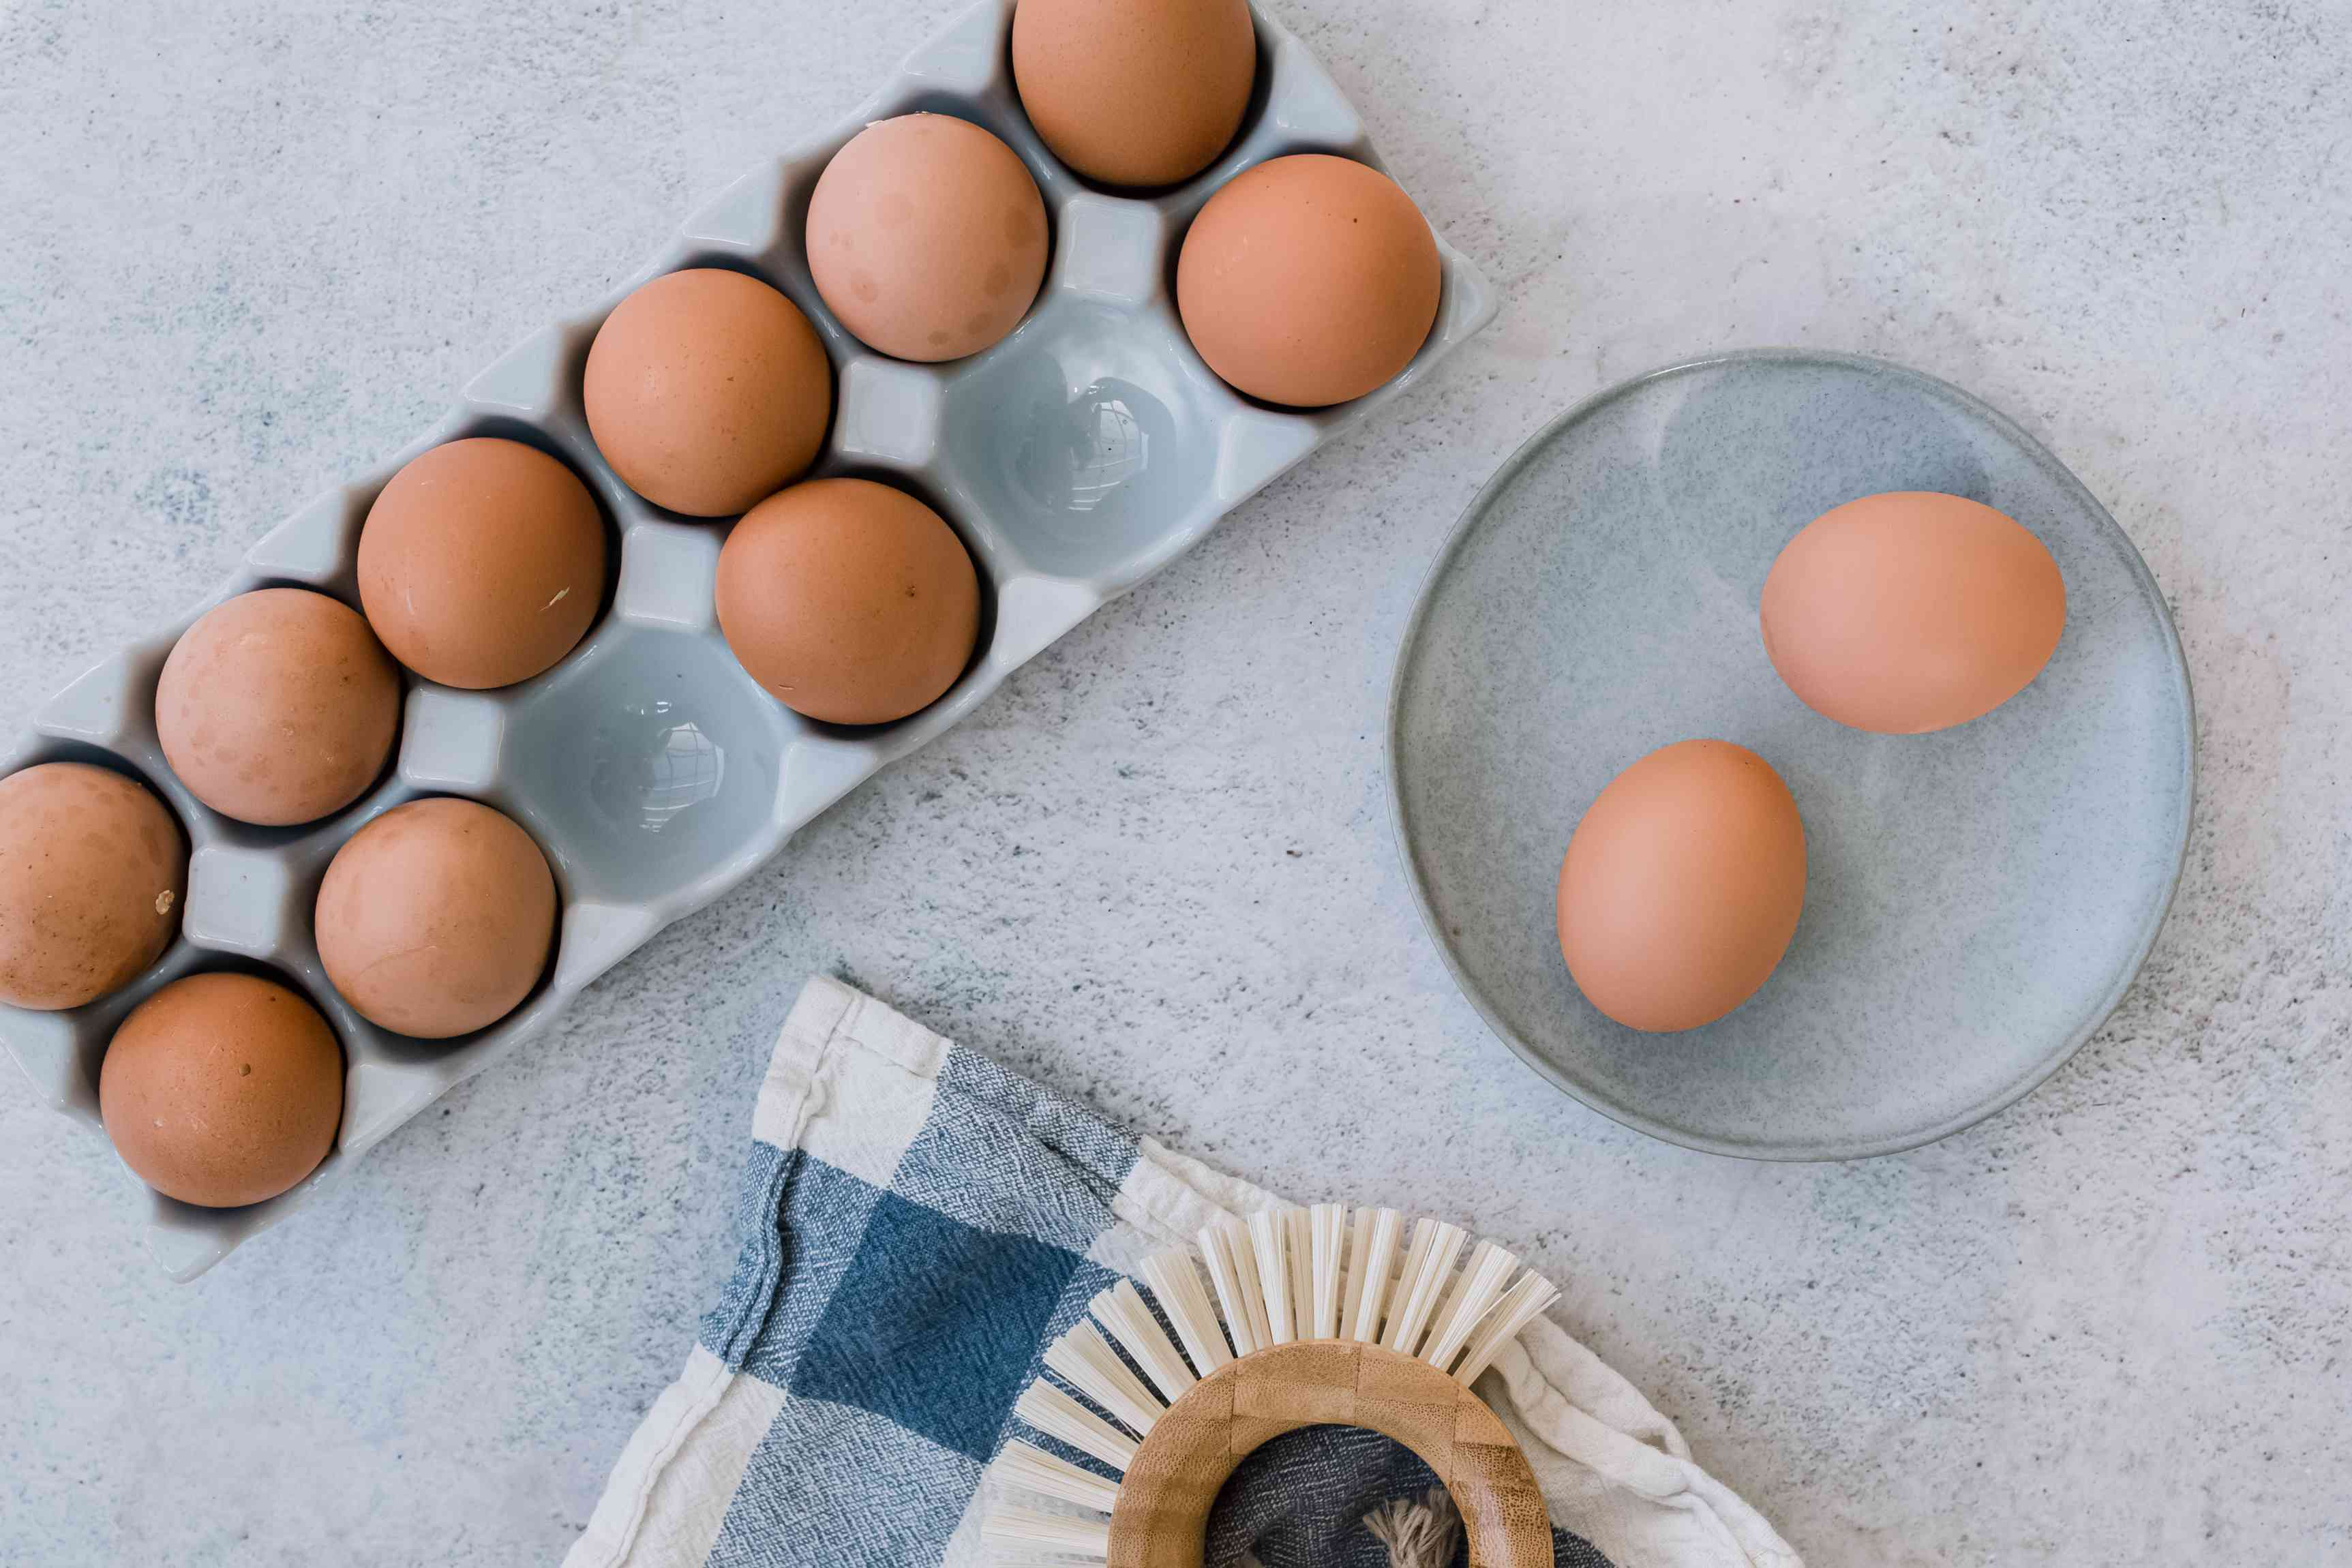 dry cleaning eggs with a brush